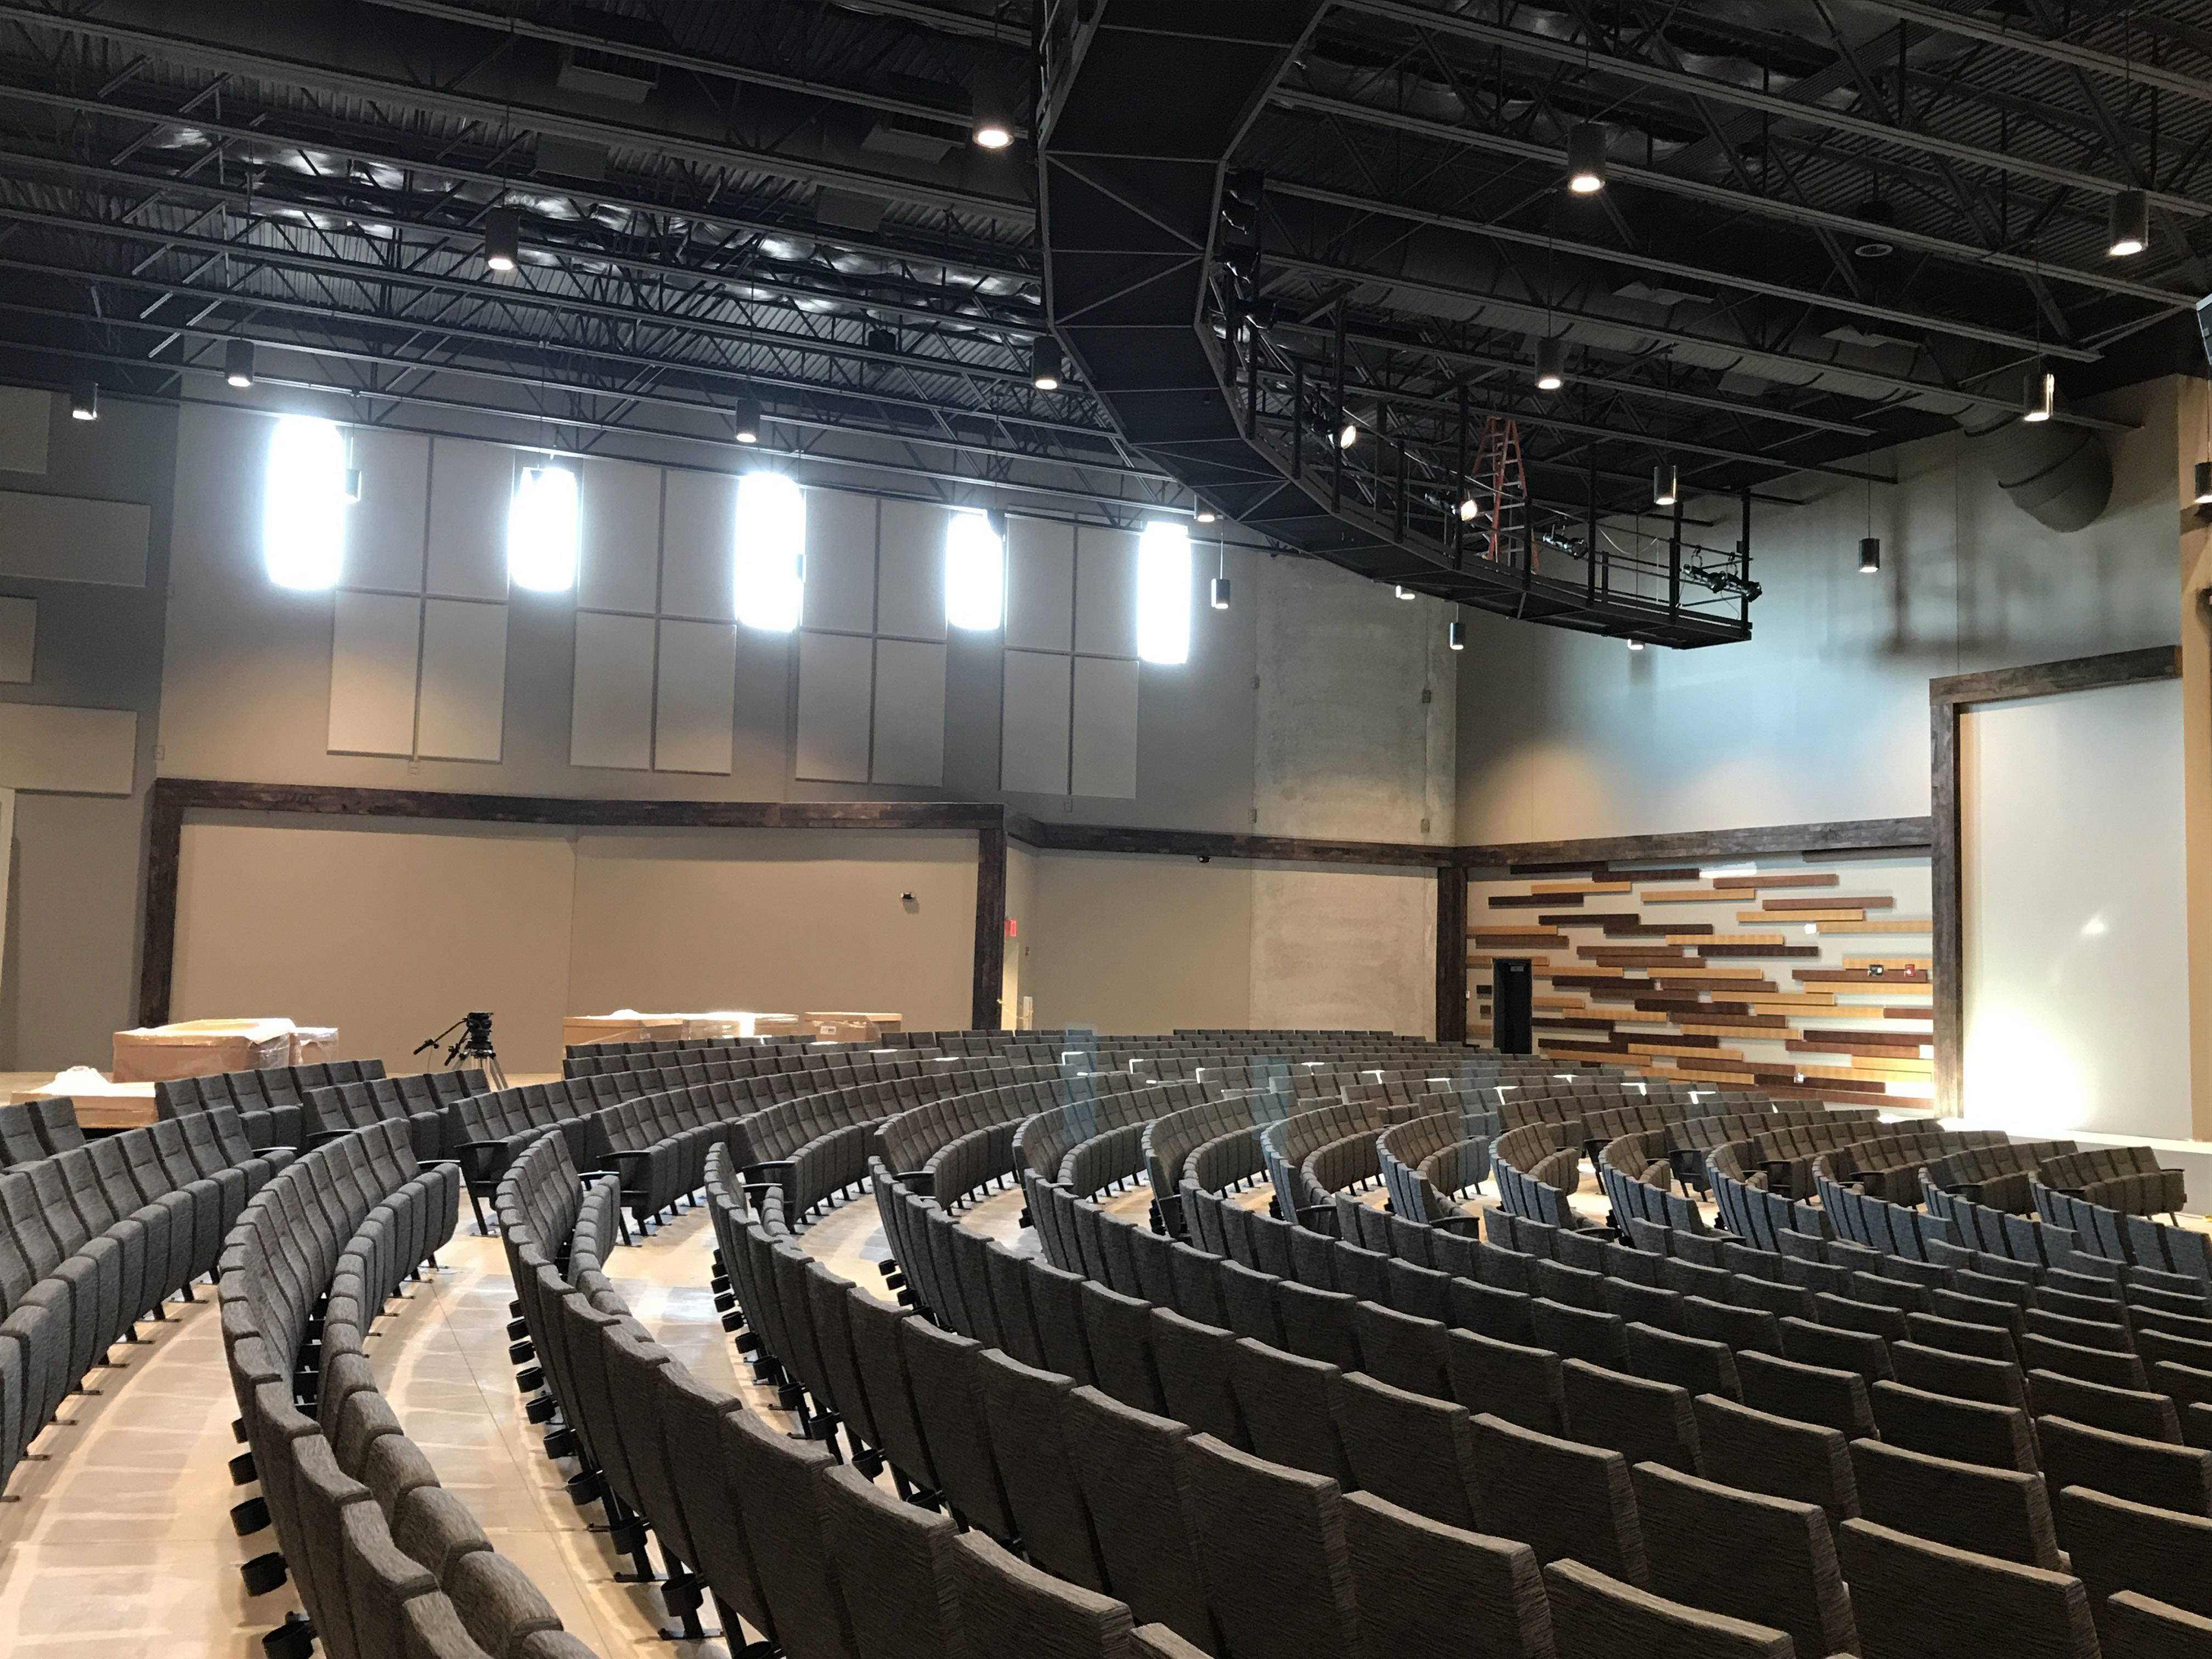 Willow Crystal Lake Church will open its permanent new home at 100 S. Main St. in downtown Crystal Lake later this month. The space has been developed with more than 150 church volunteers putting in more than 10,000 hours of work. A grand opening party and services are Oct. 21 and 22.